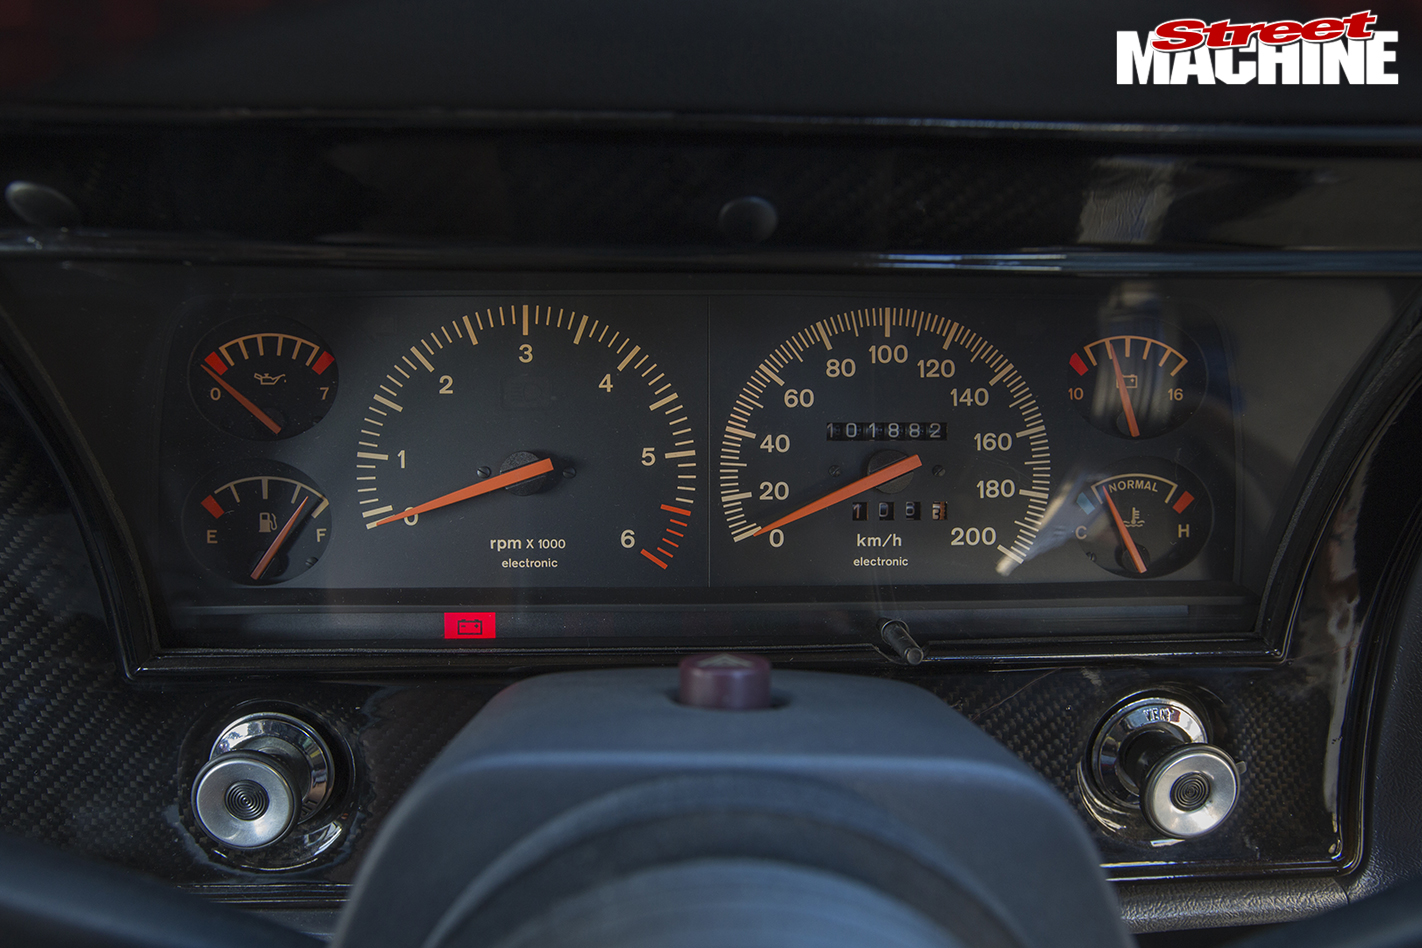 Ford -XY-Falcon -interior -gauges